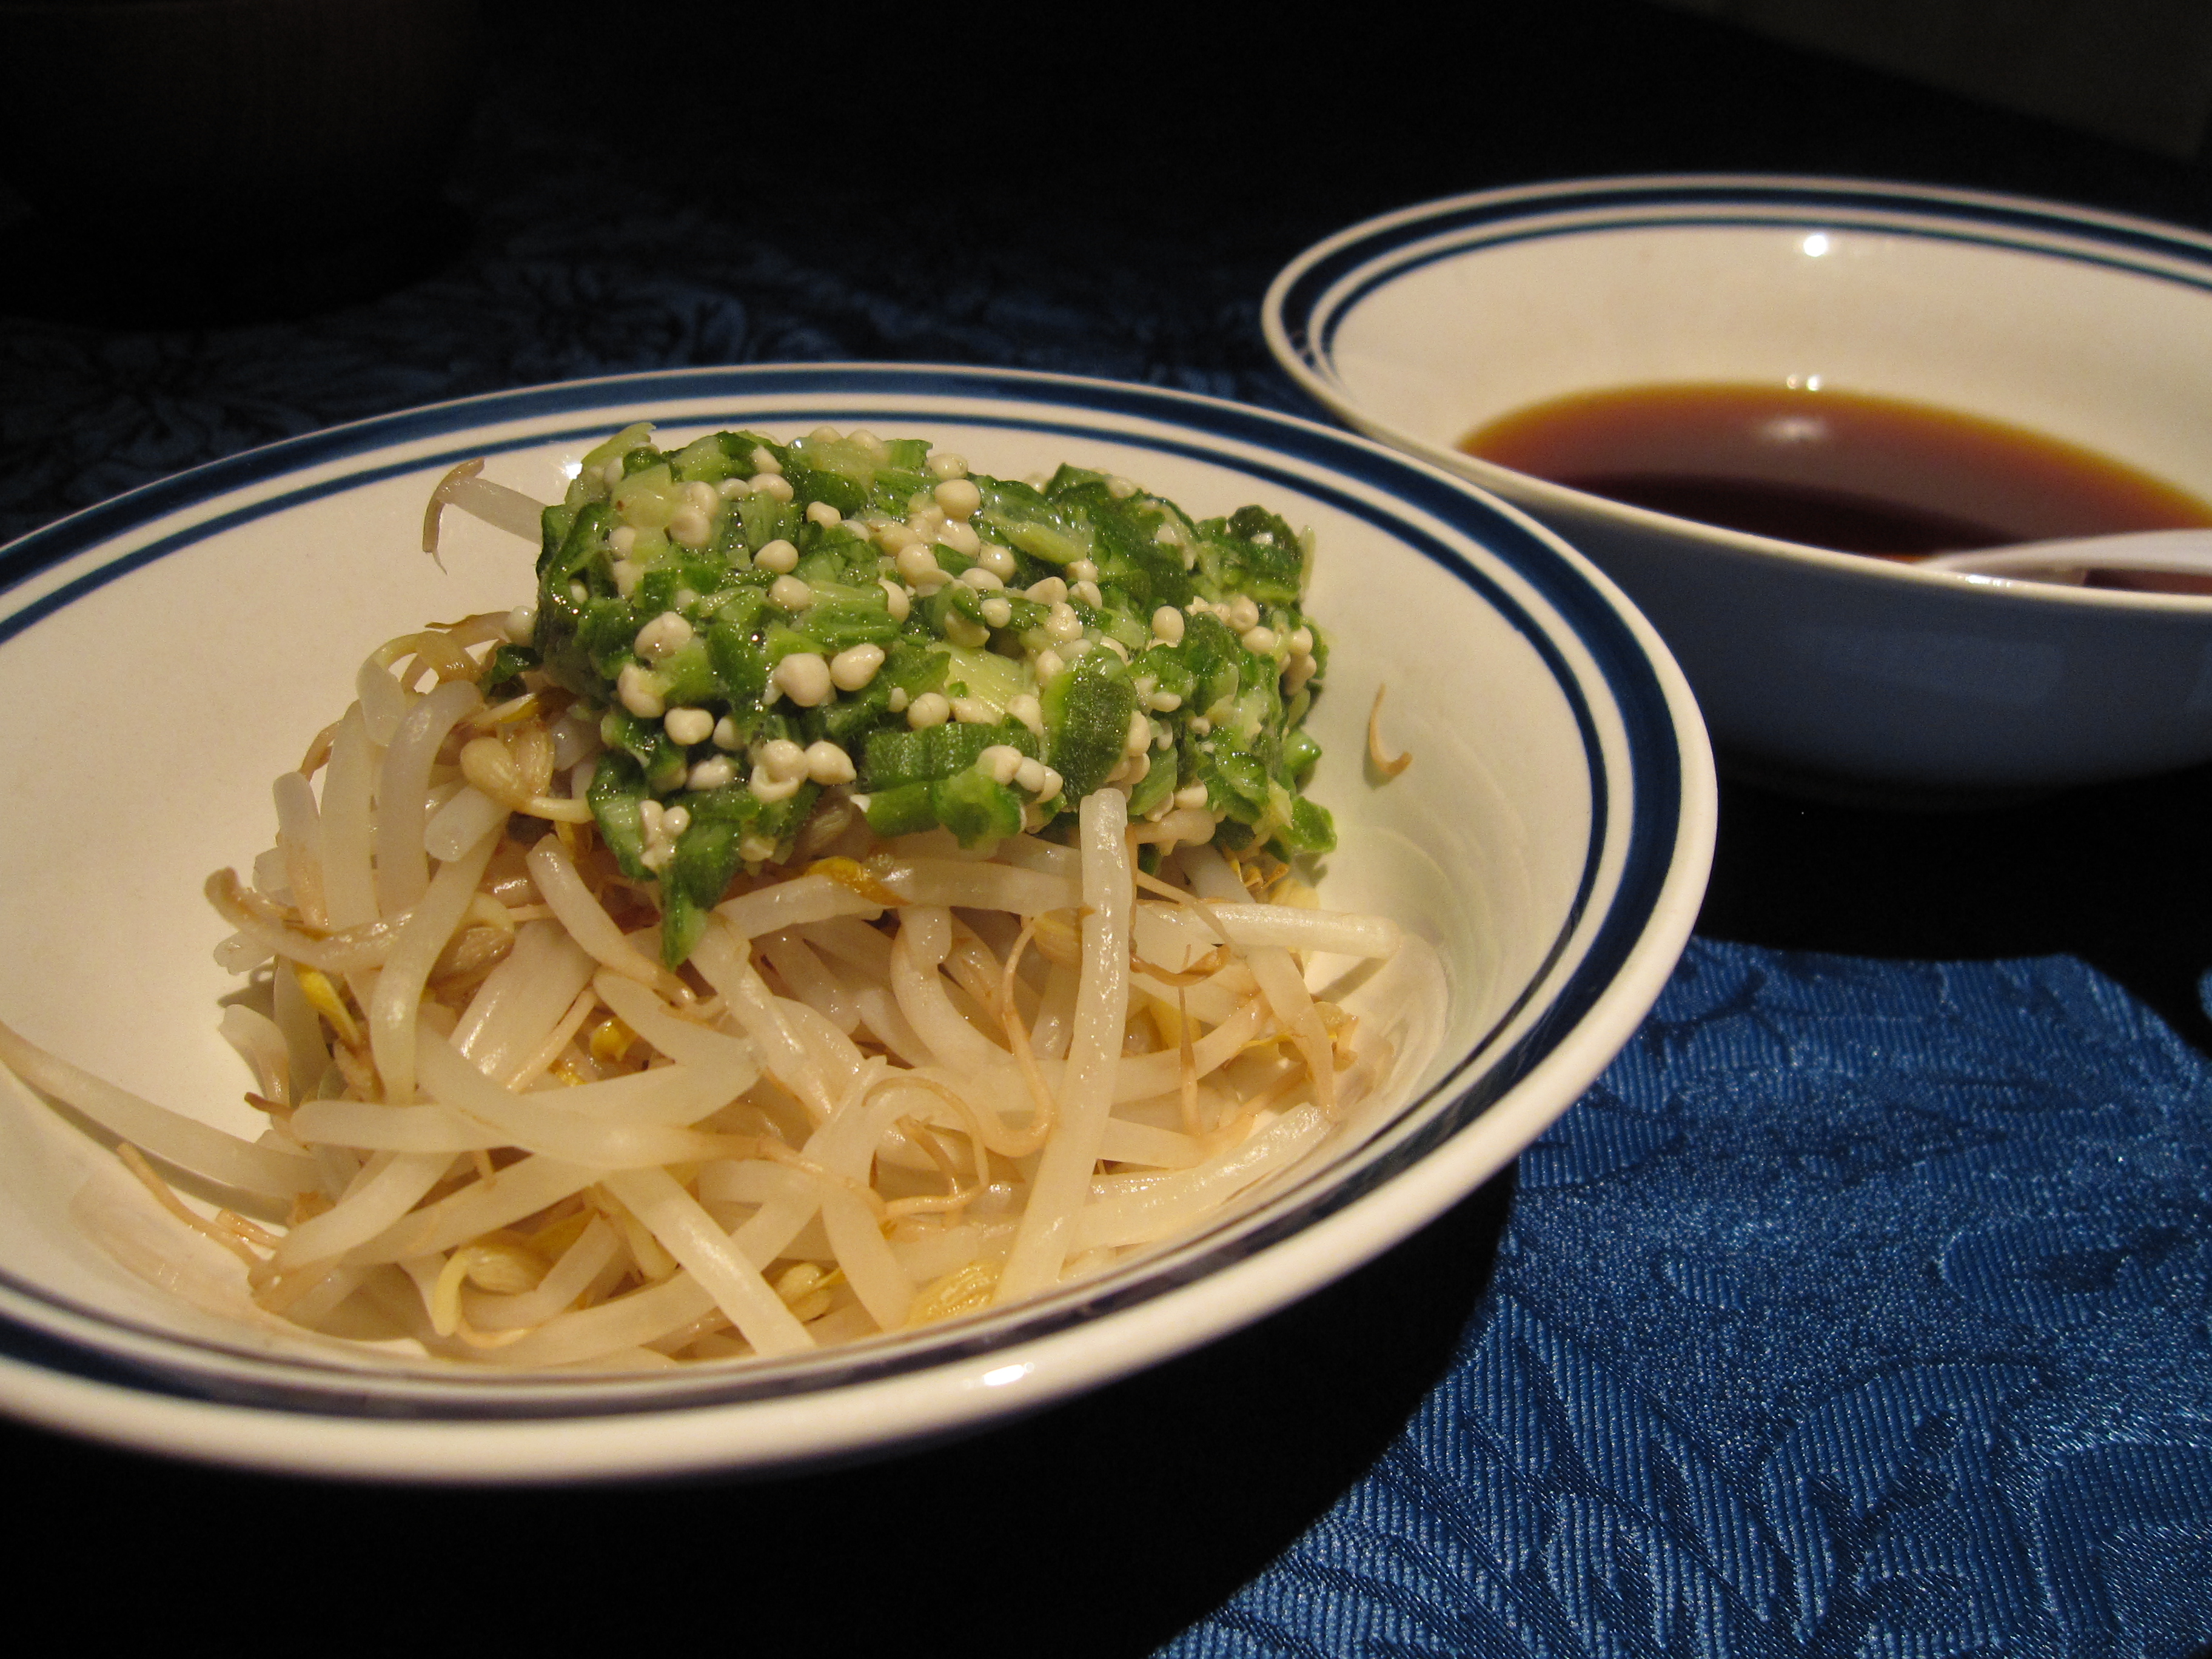 Bean sprouts & okra